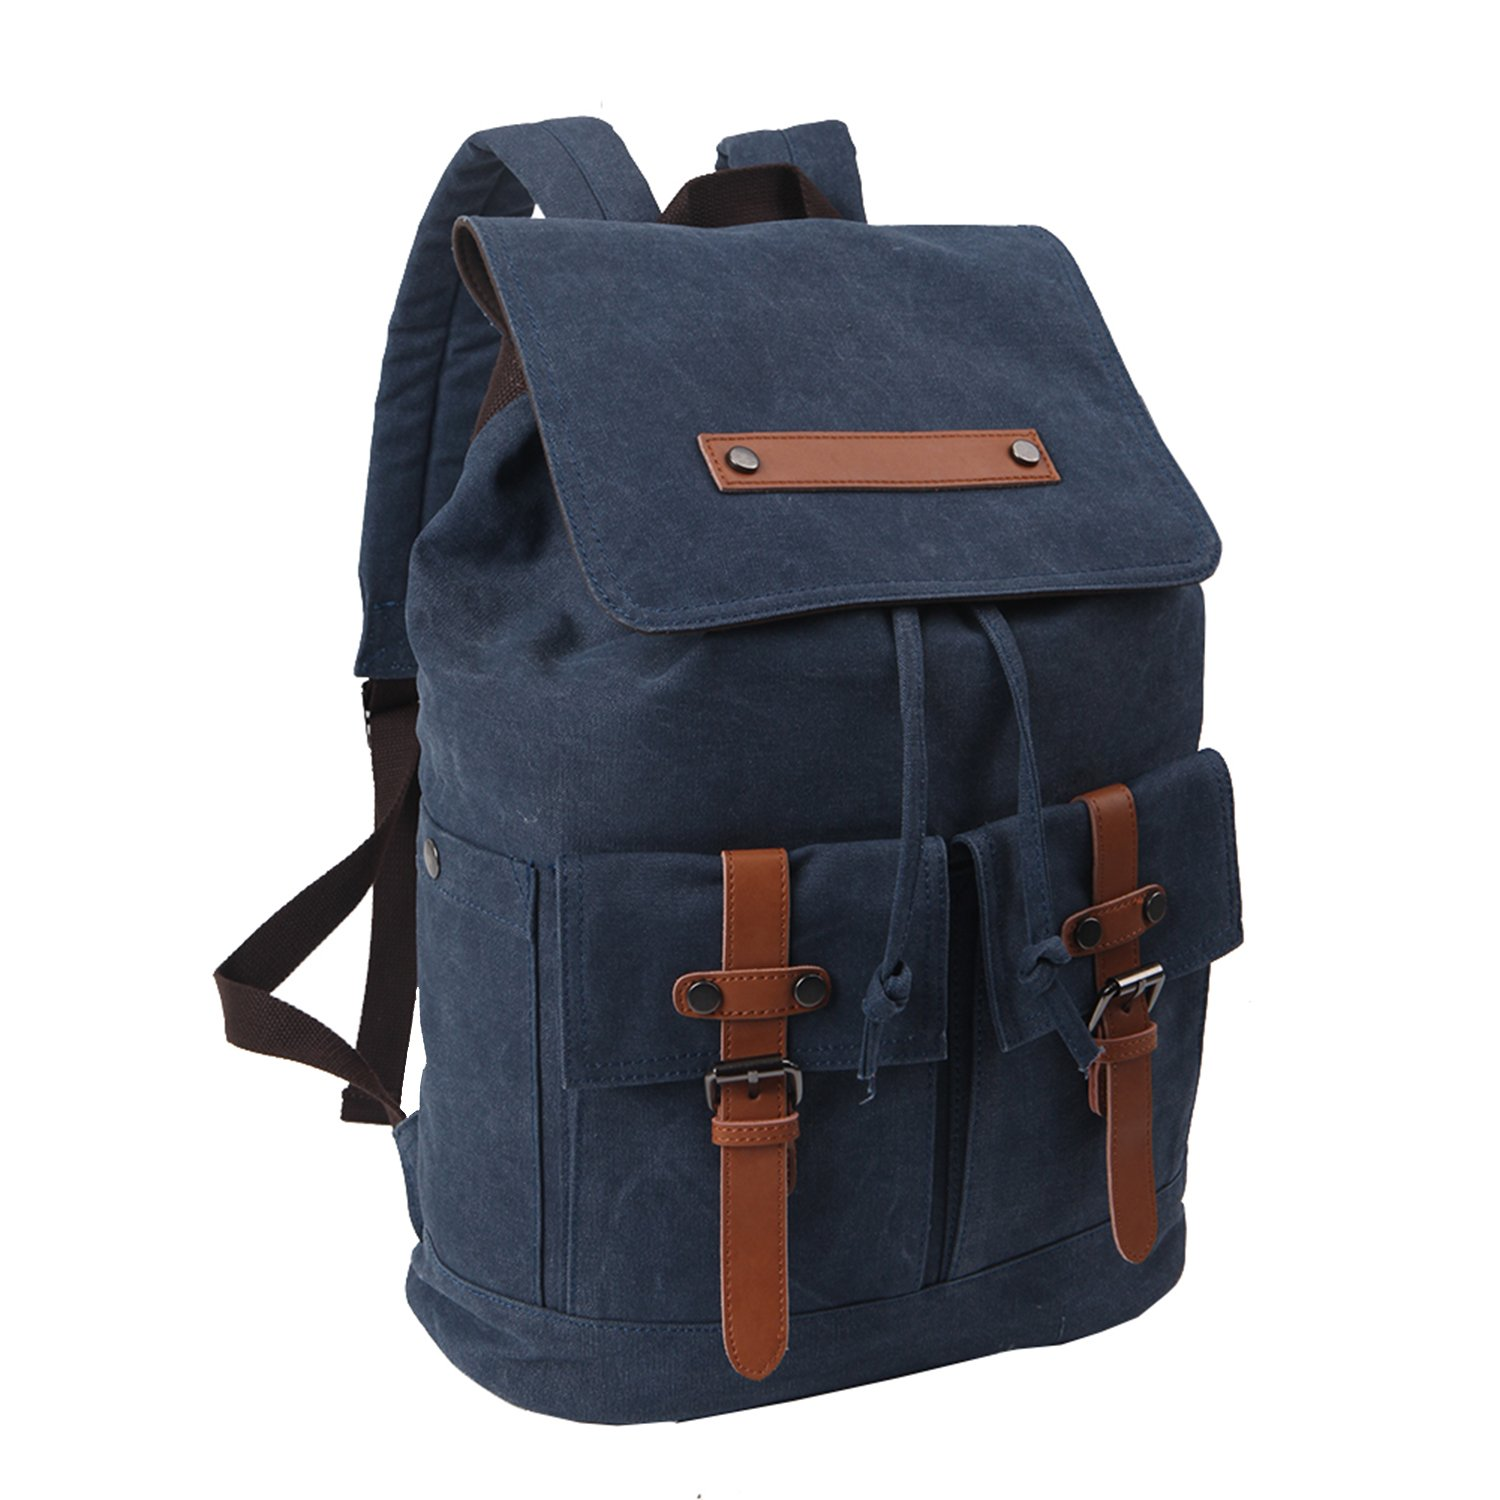 "Freeprint Vintage Canvas Laptop Backpack Travel Rucksack School Bag in Medium Size fits 15.6"" Computers for Men and Women, Blue"